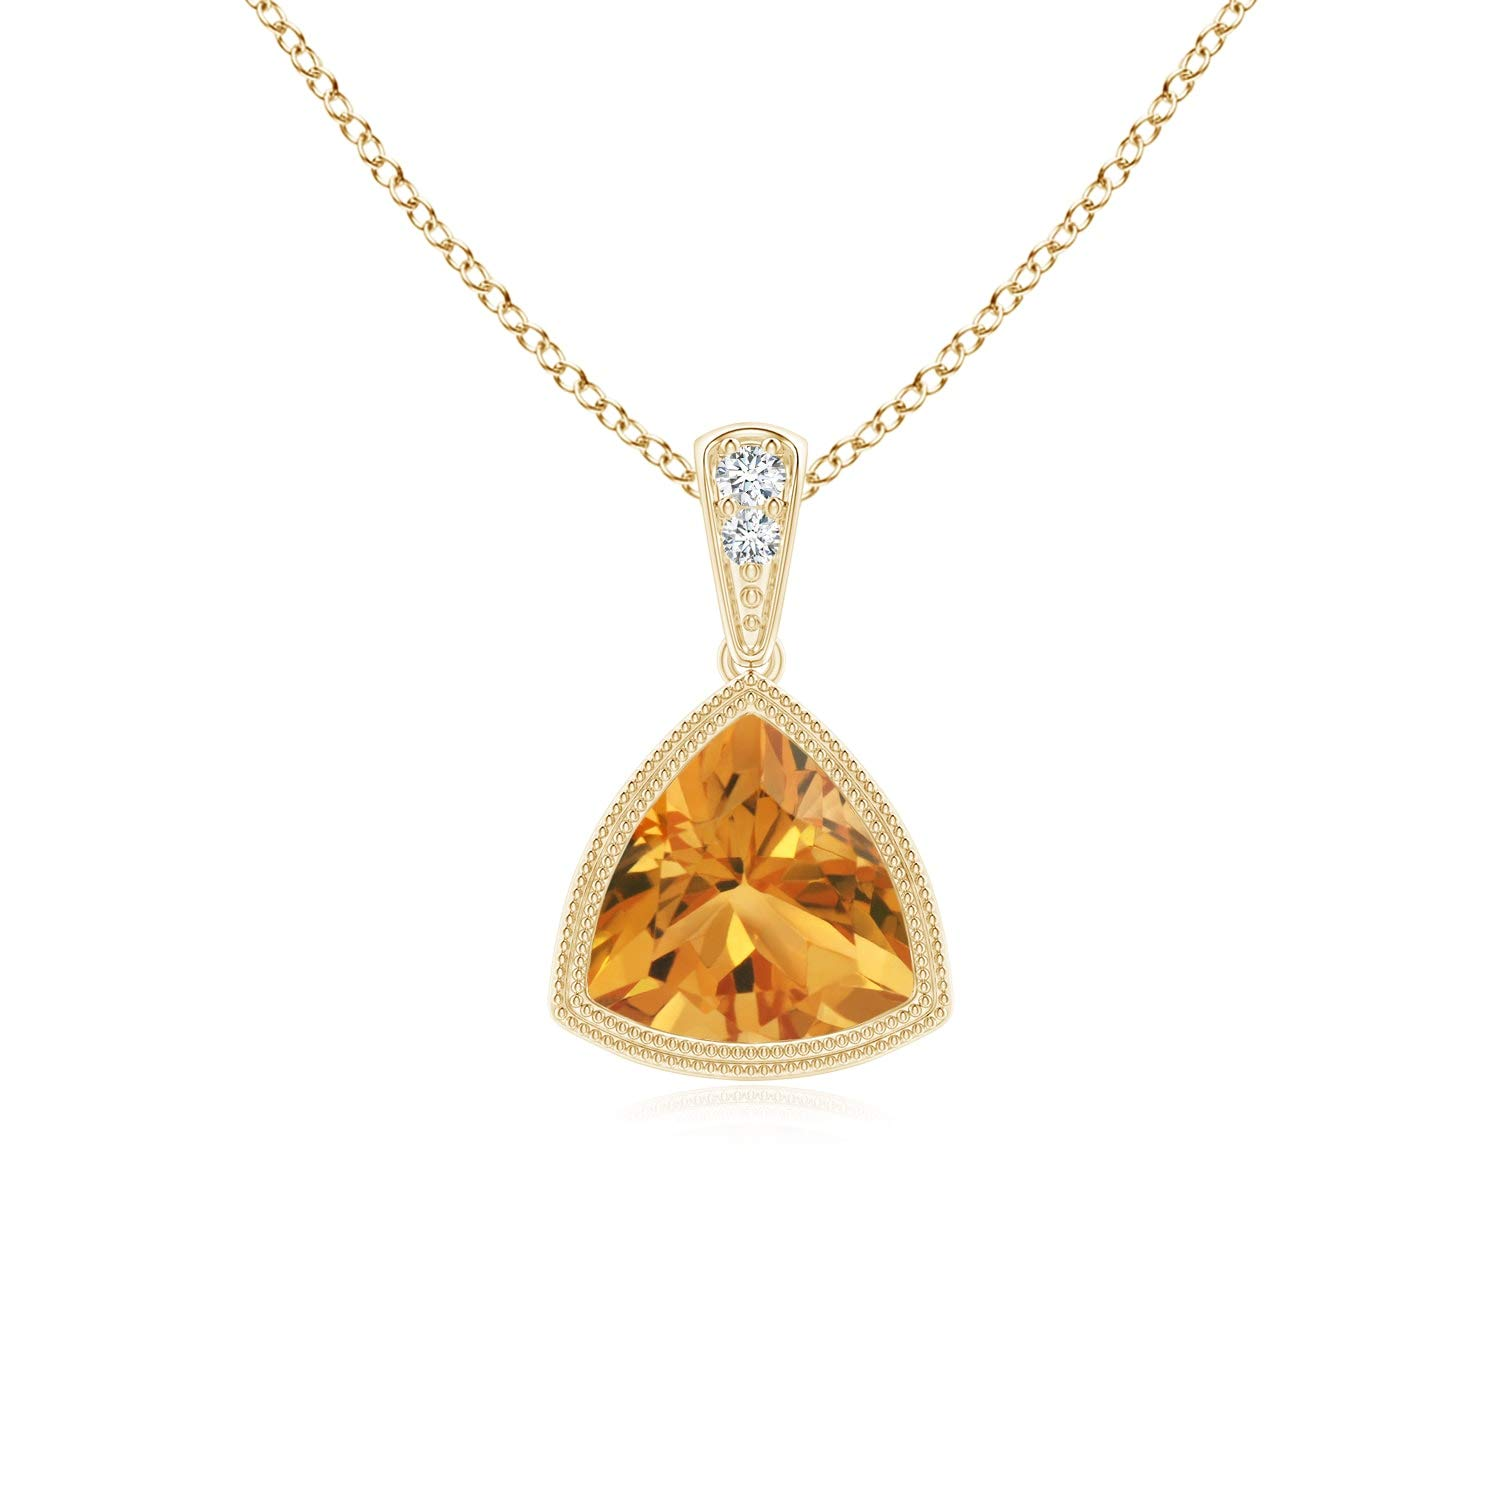 Bezel-Set Trillion Citrine Pendant with Milgrain 6mm Citrine